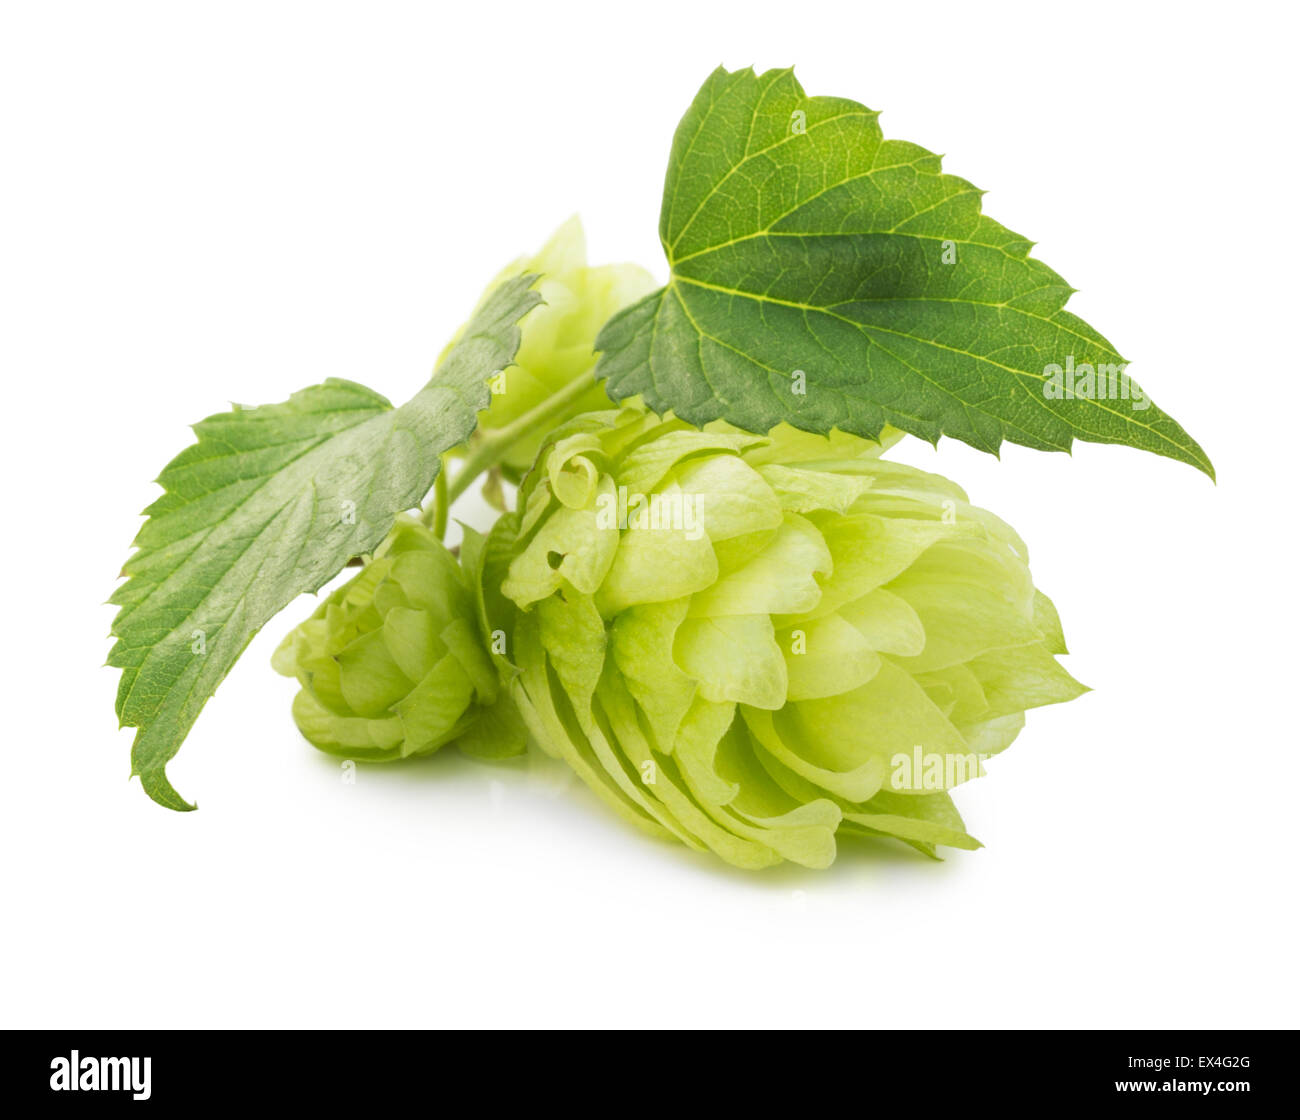 green hops isolated on the white background. - Stock Image